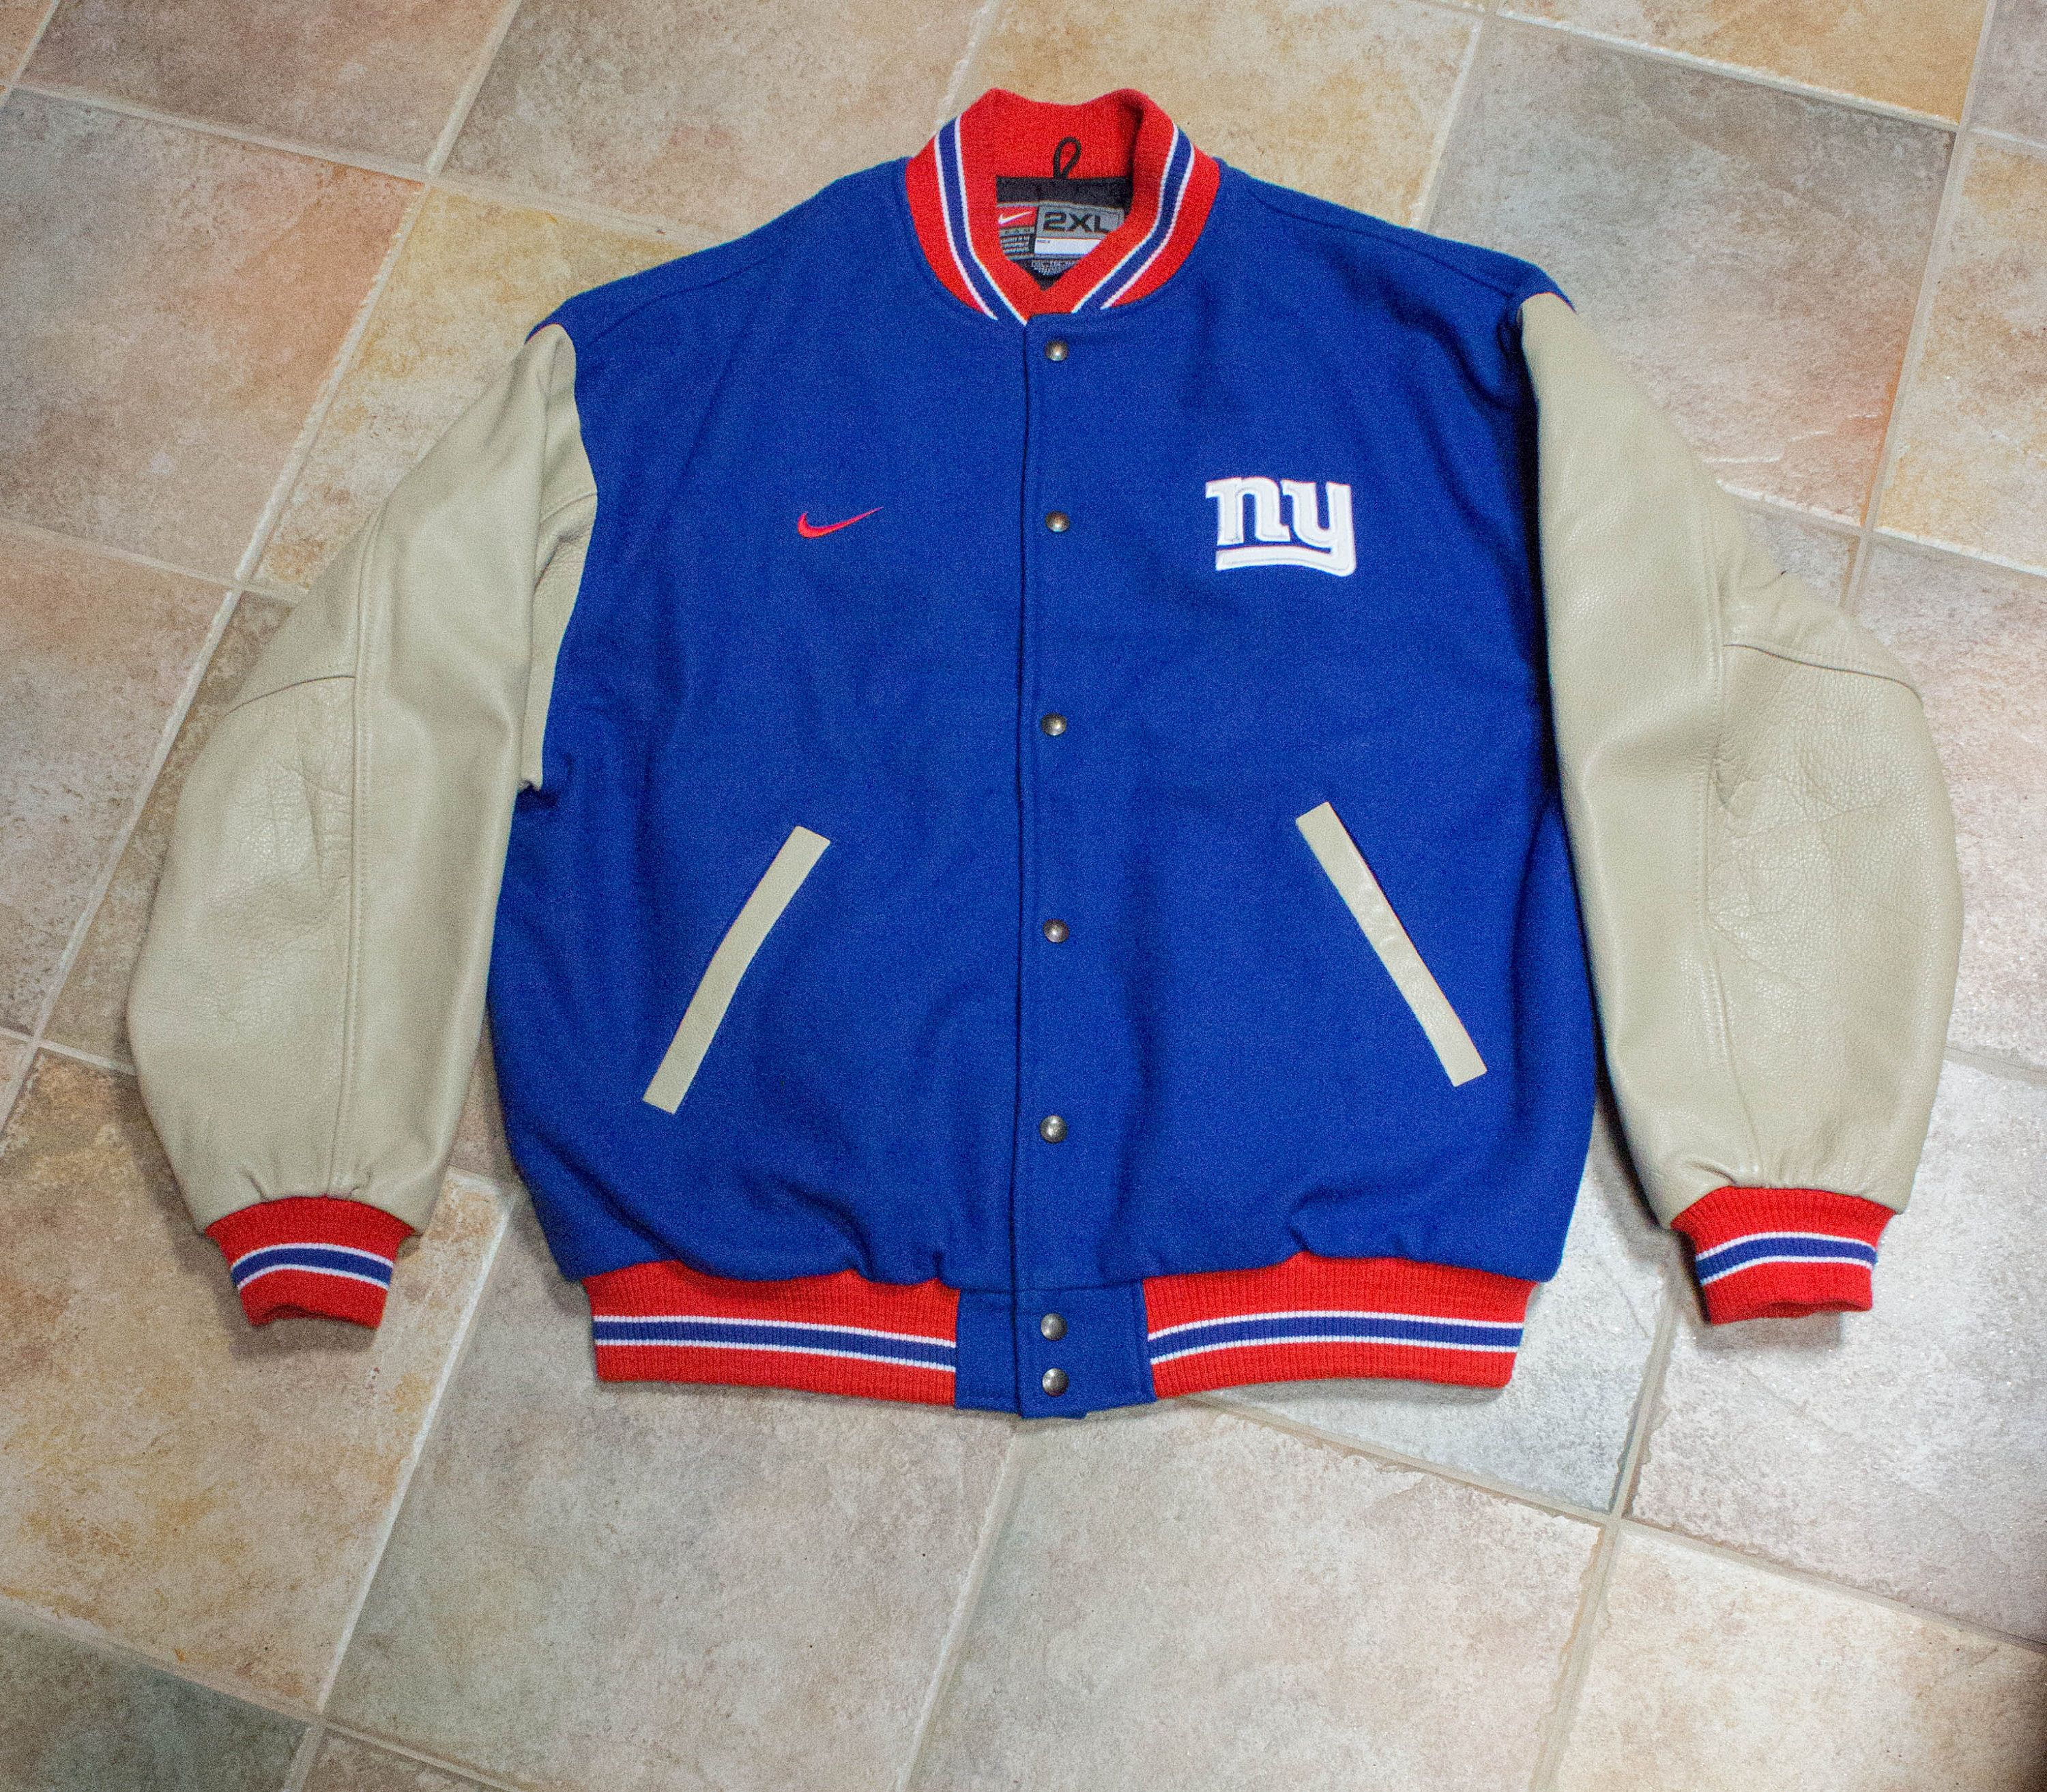 90s NFL New York Giants Nike Team Letterman Jacket- 2XL XXL- Tan Leather  Sleeves- Football Jacket by JenuineCollection on Etsy d4dd909a3